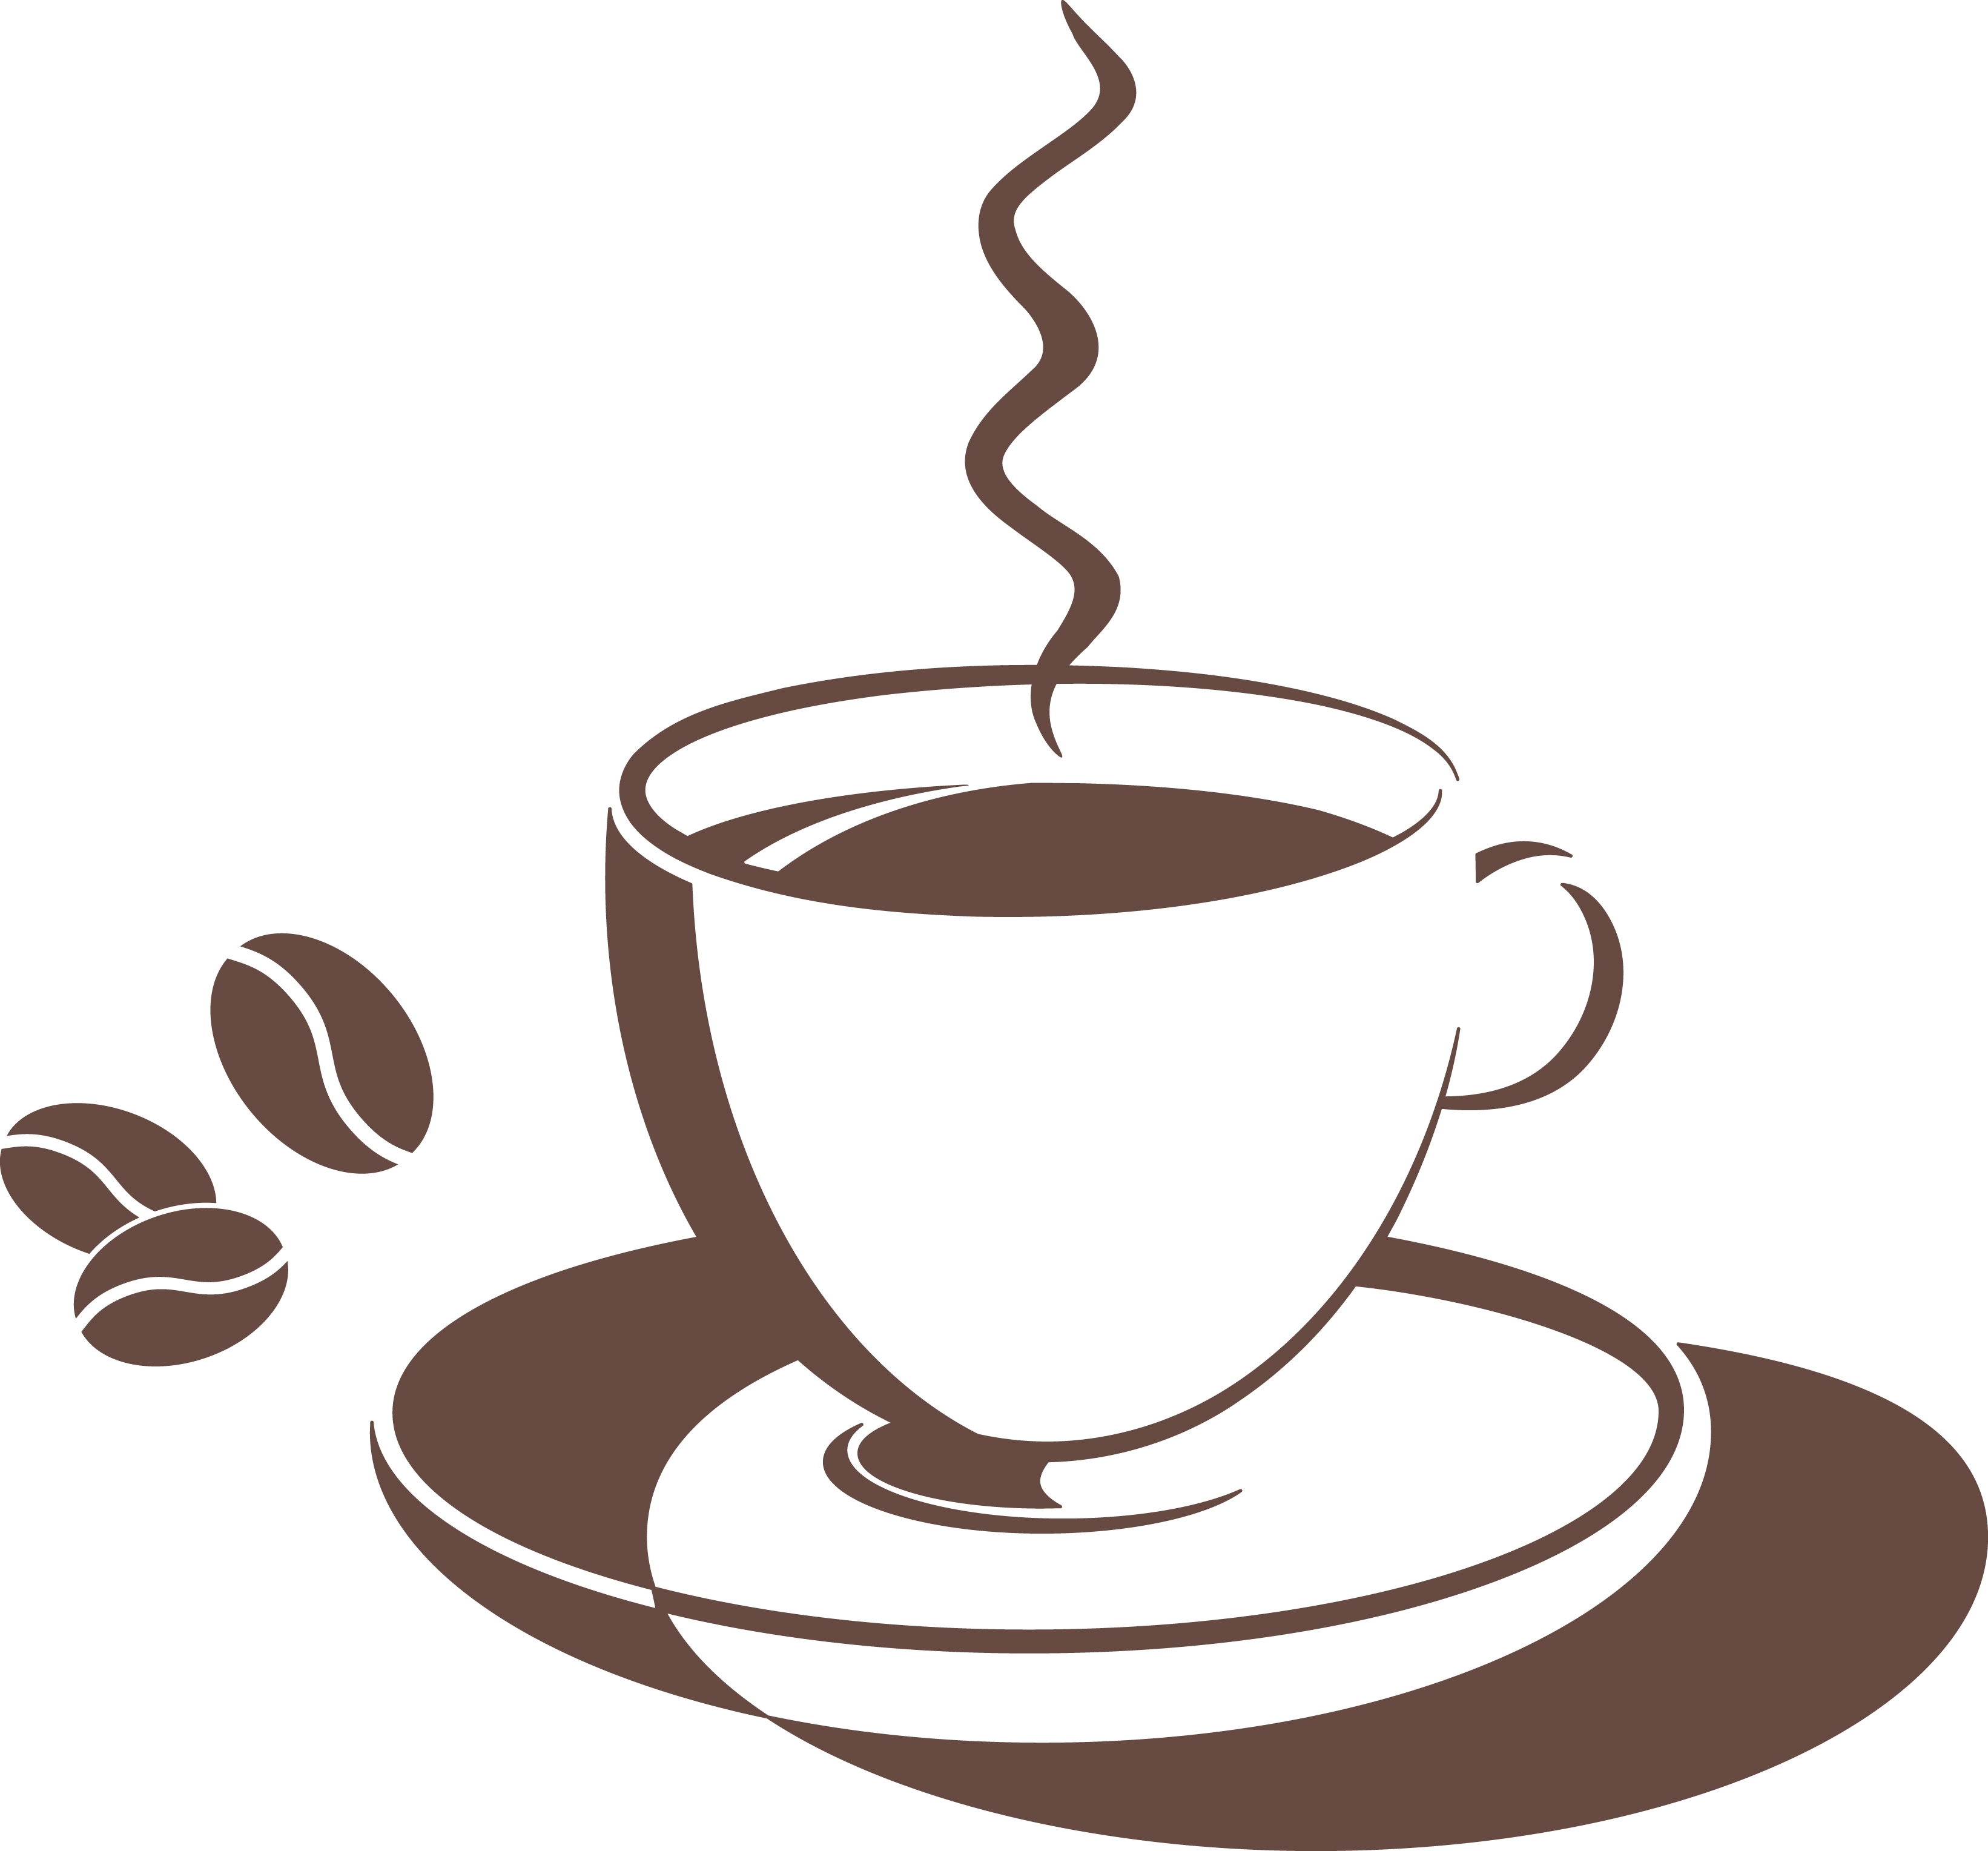 Aesthetic coffee clipart clipart images gallery for free.